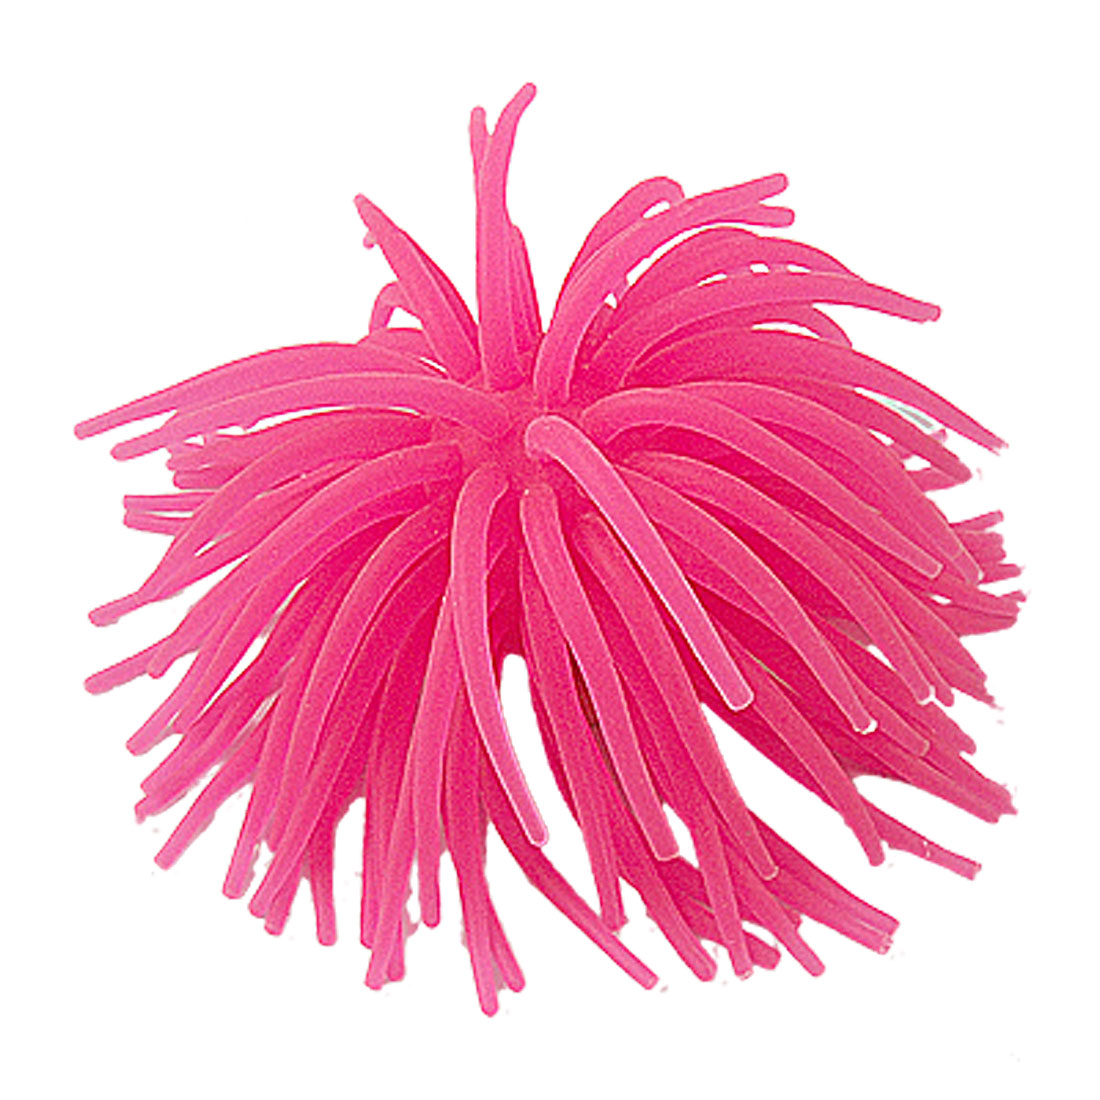 Silicone Magenta Manmade Coral Ornament for Fish Tank